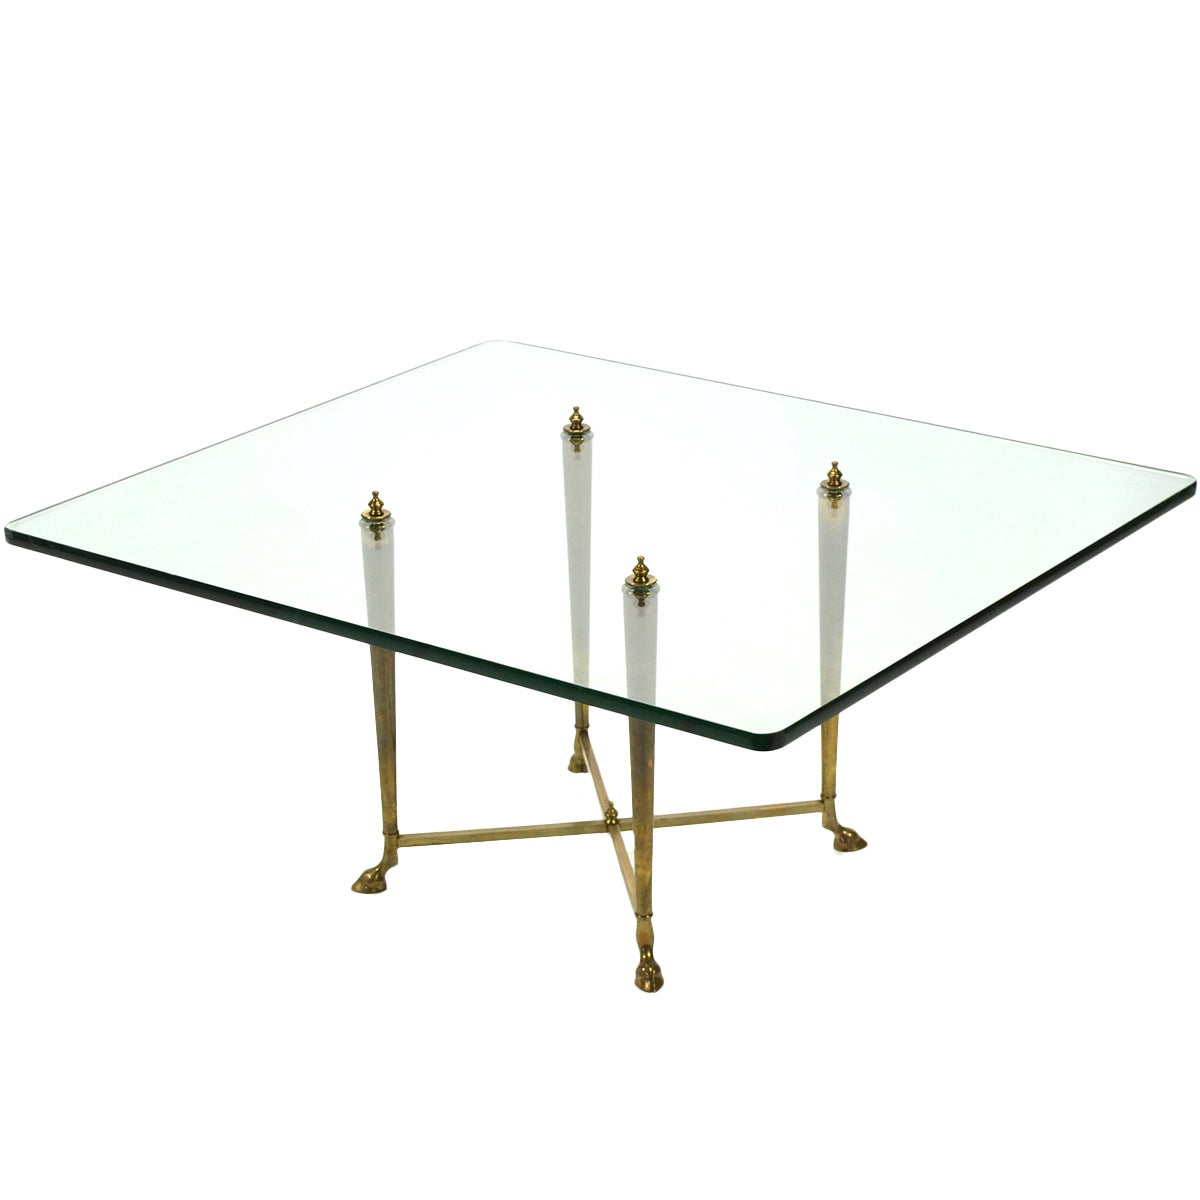 Italian Glass Top Coffee Table with Brass Hoof Base